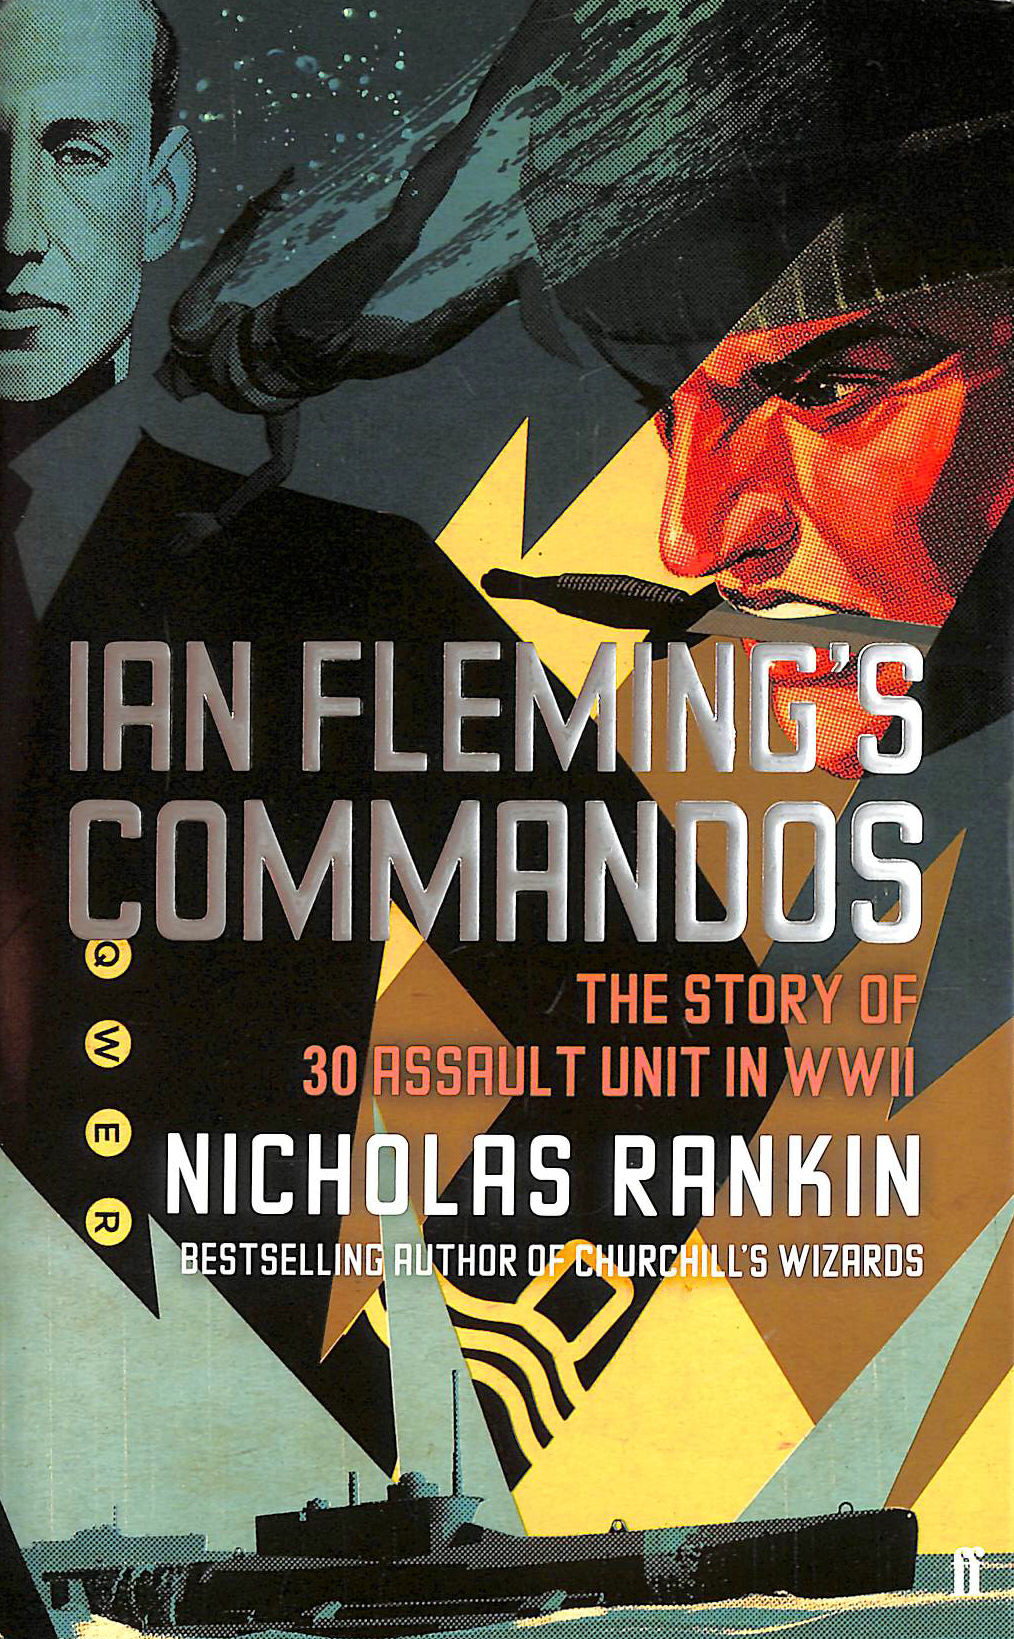 Image for Ian Fleming's Commandos: The Story of 30 Assault Unit in WWII